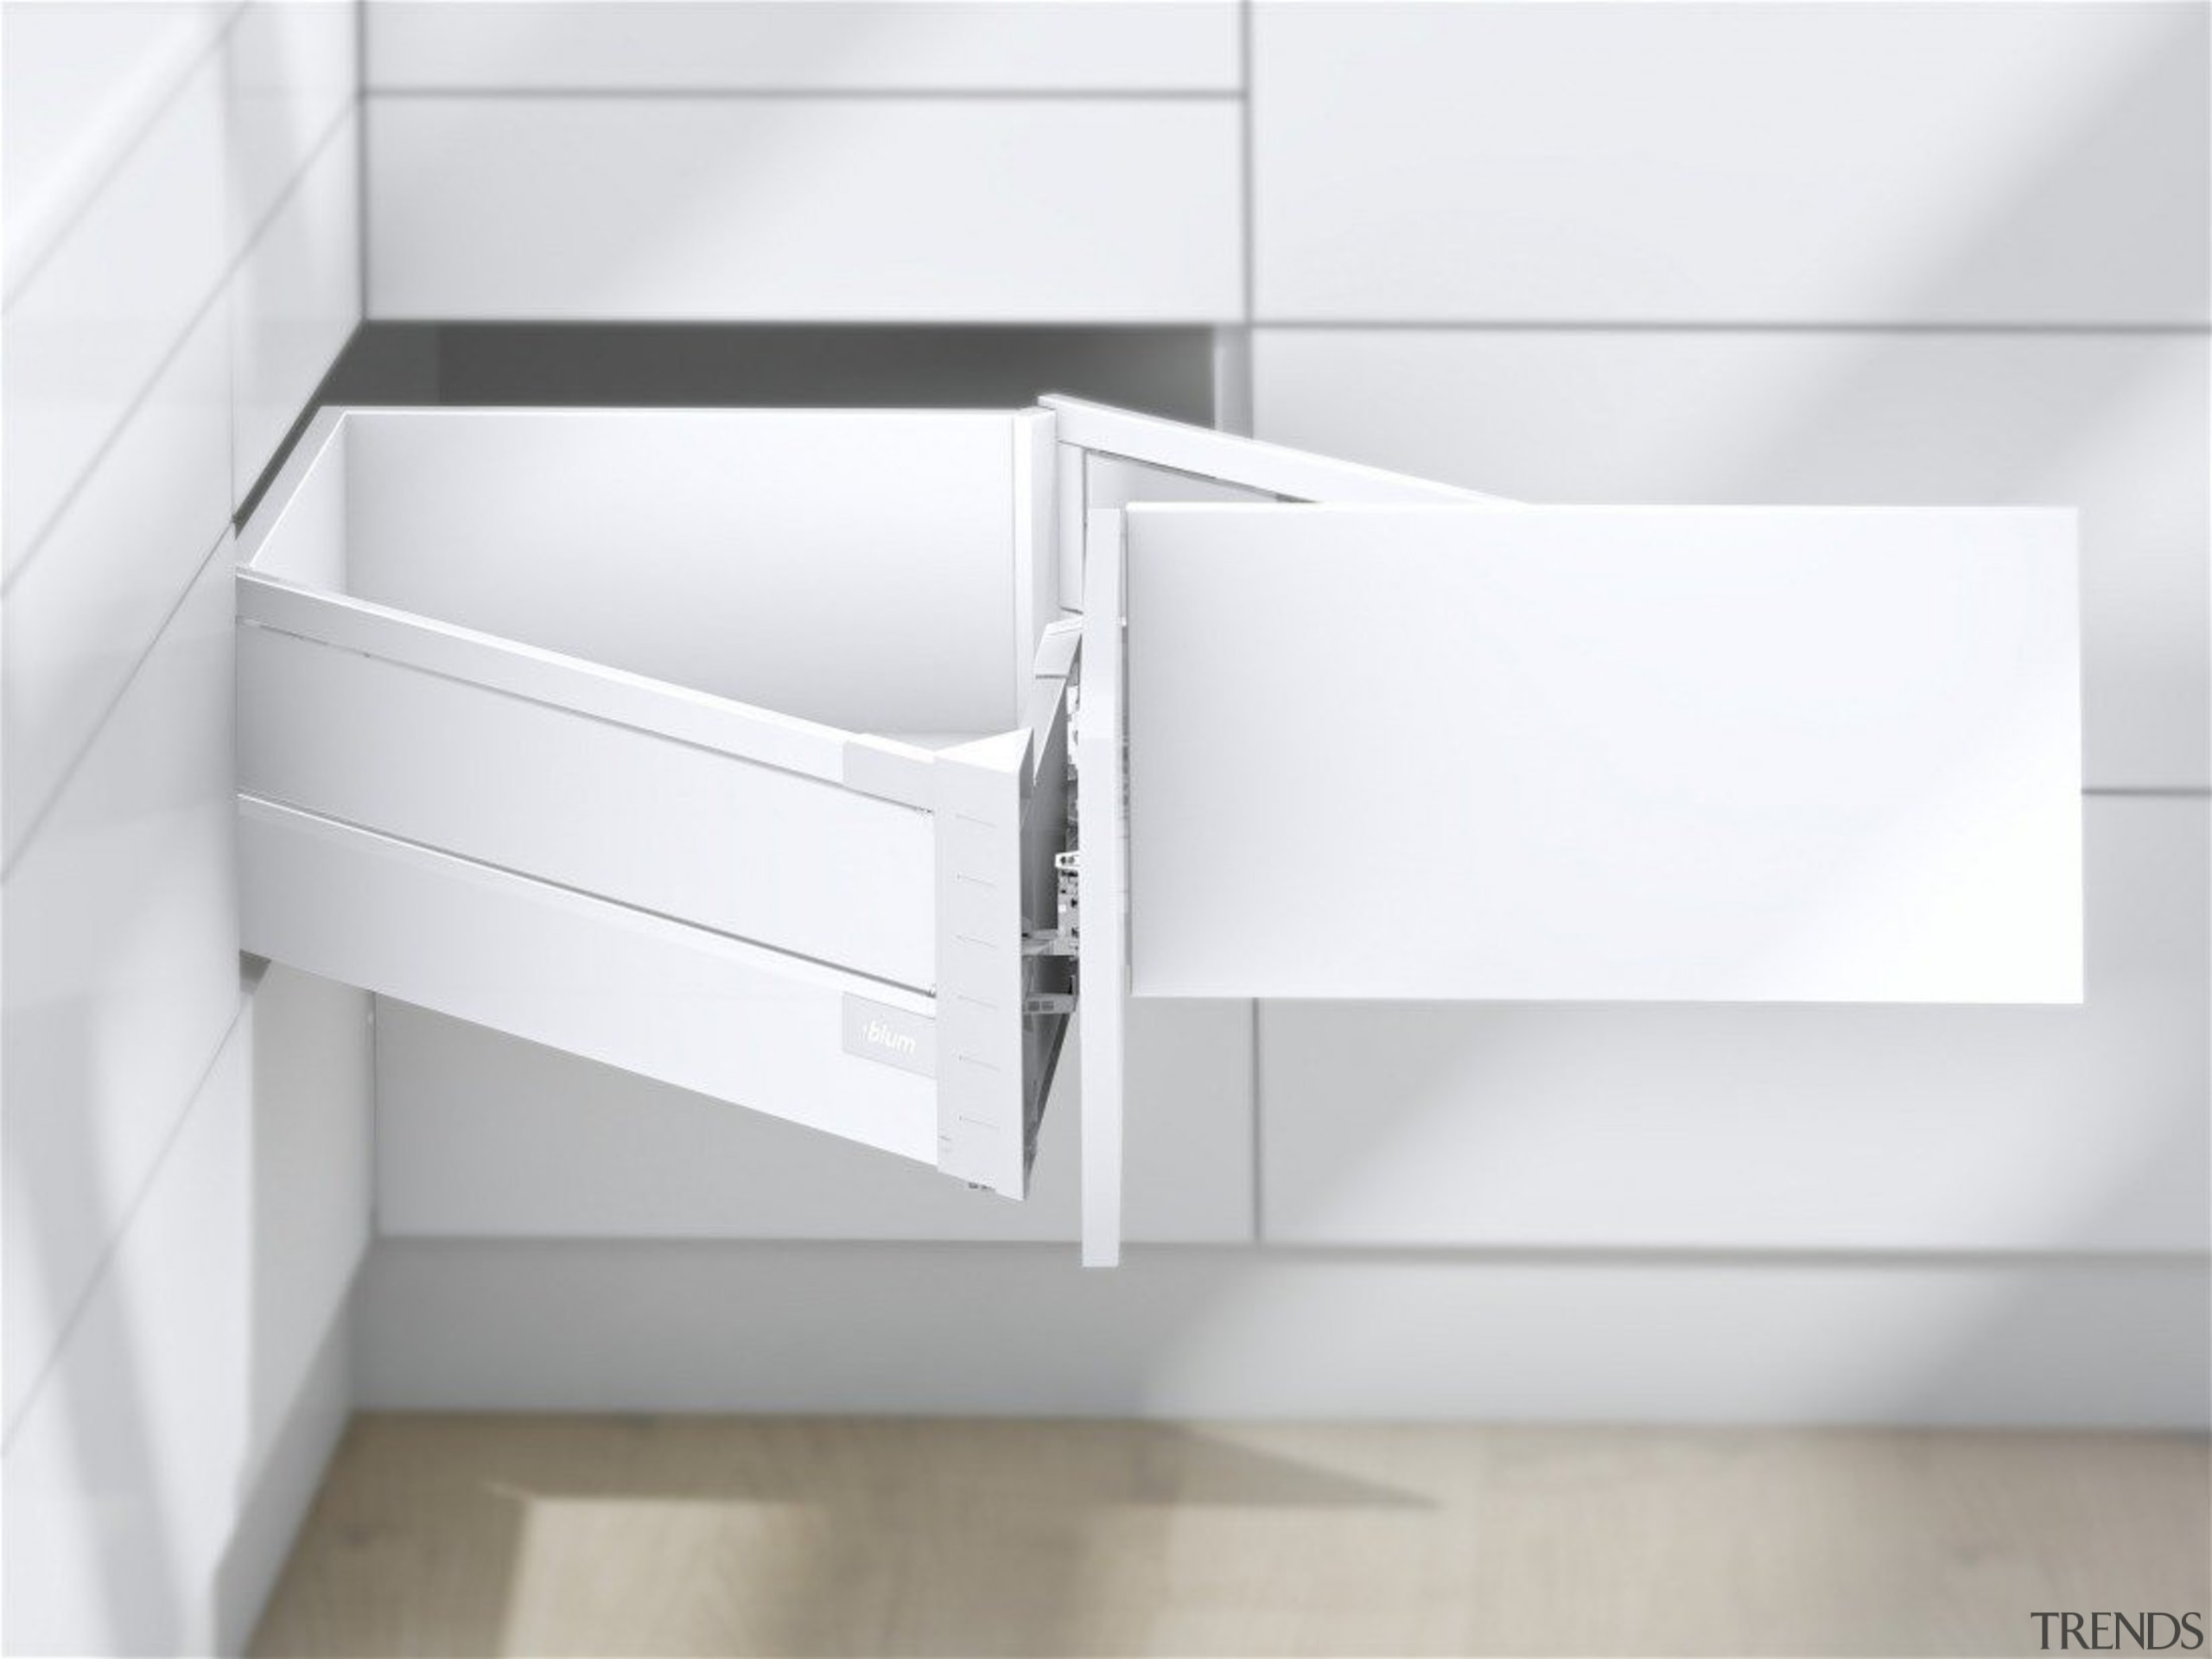 The SPACE CORNER gives you full extension drawers angle, bathroom accessory, bathroom cabinet, bathroom sink, chest of drawers, drawer, furniture, line, plumbing fixture, product, sink, tap, white